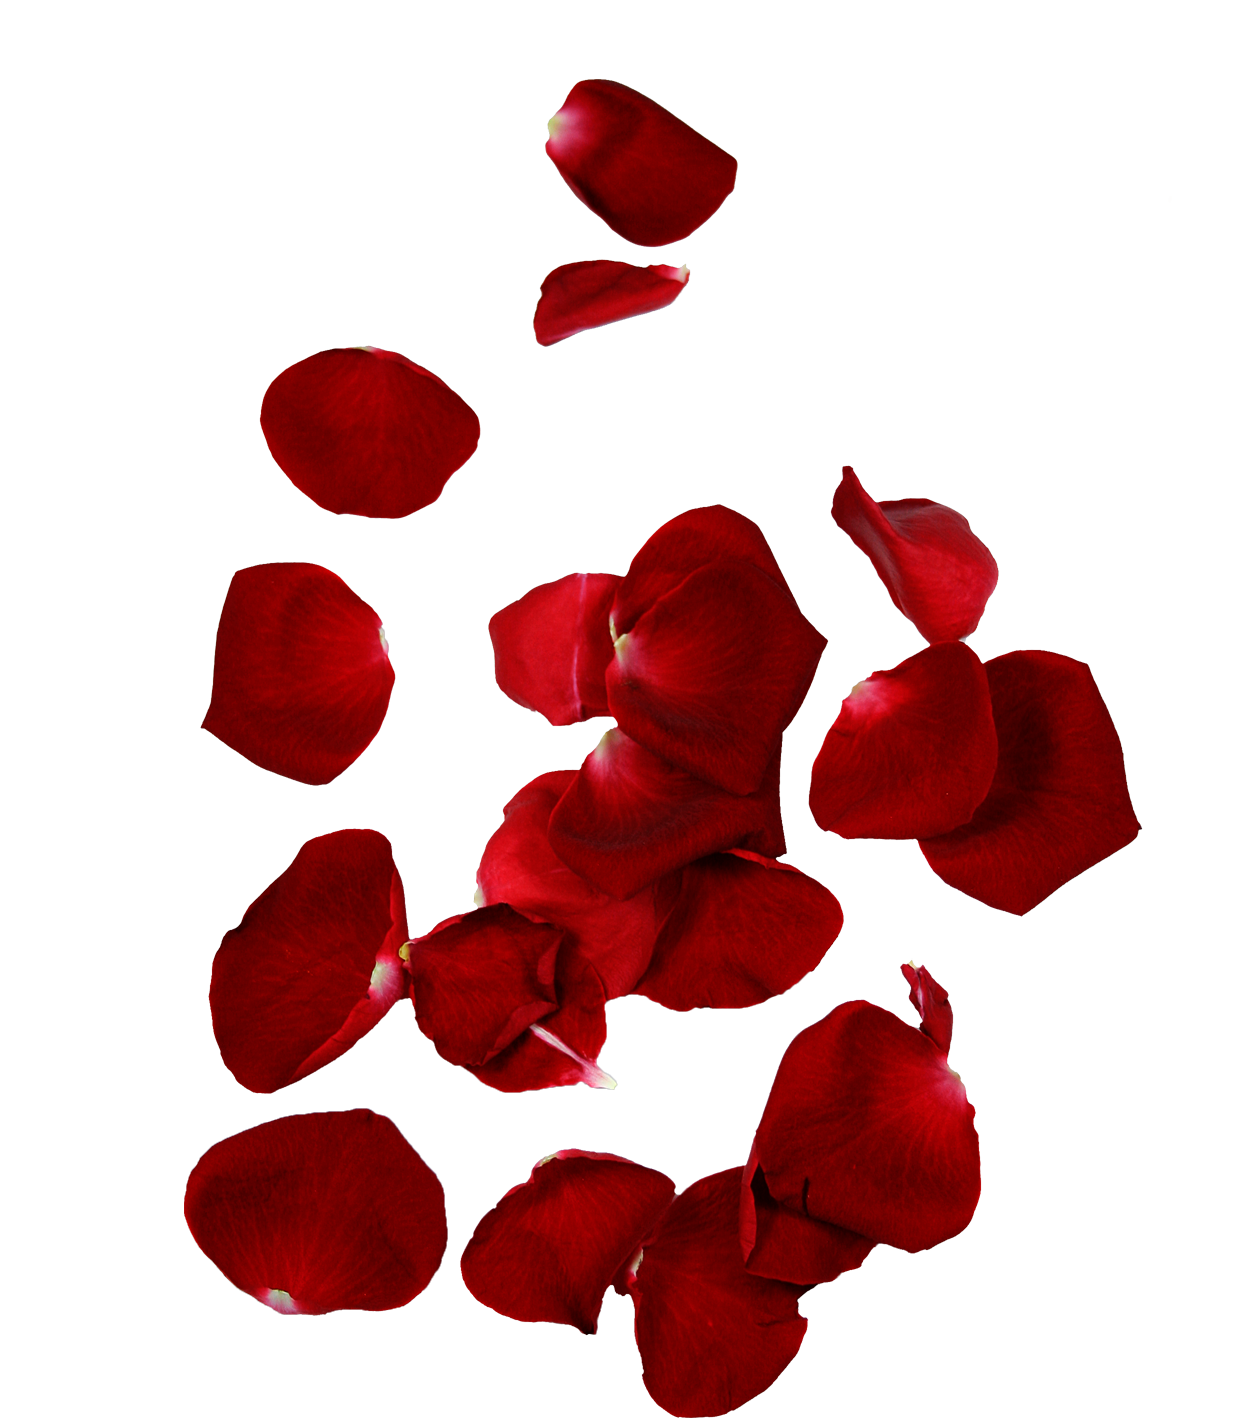 Png falling flower petals. Rose hd quality free